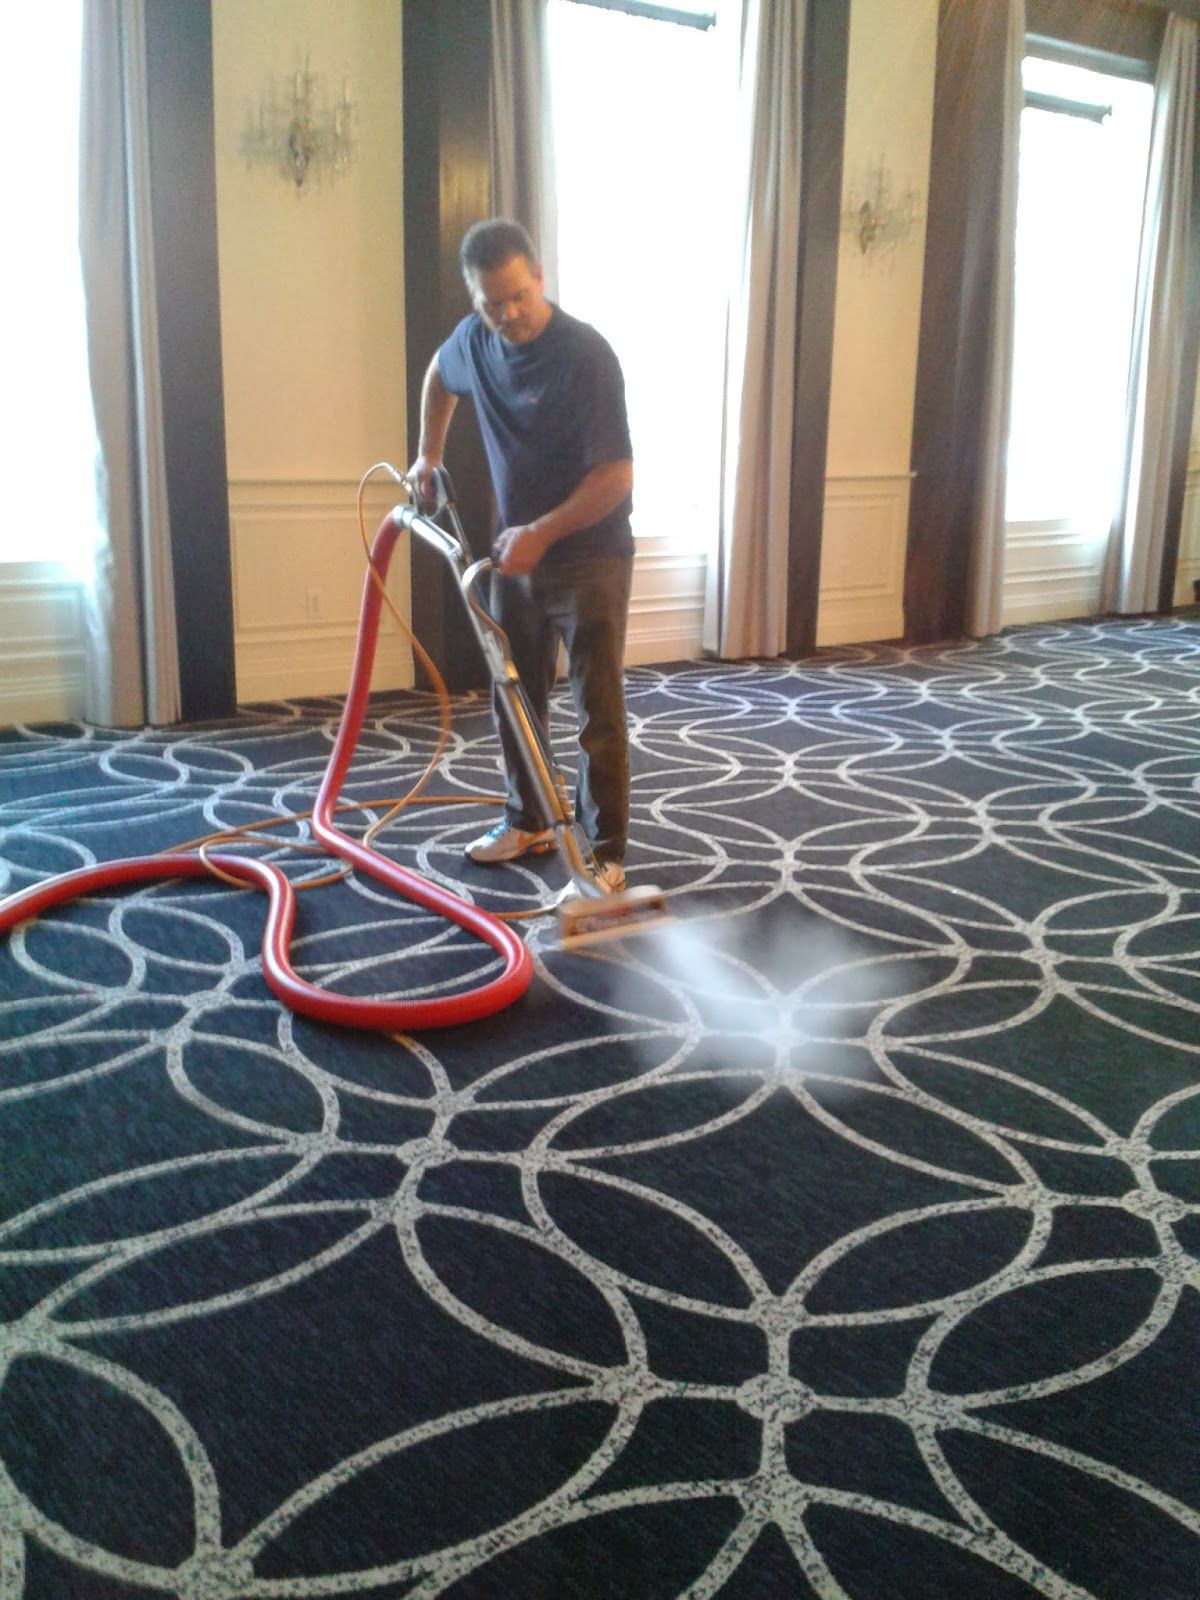 Toms River Carpet Cleaners In Toms River Nj 732 492 3300 Hi Powered Steam Cleaning Fastest How To Clean Brick How To Clean Carpet Cleaning Upholstery